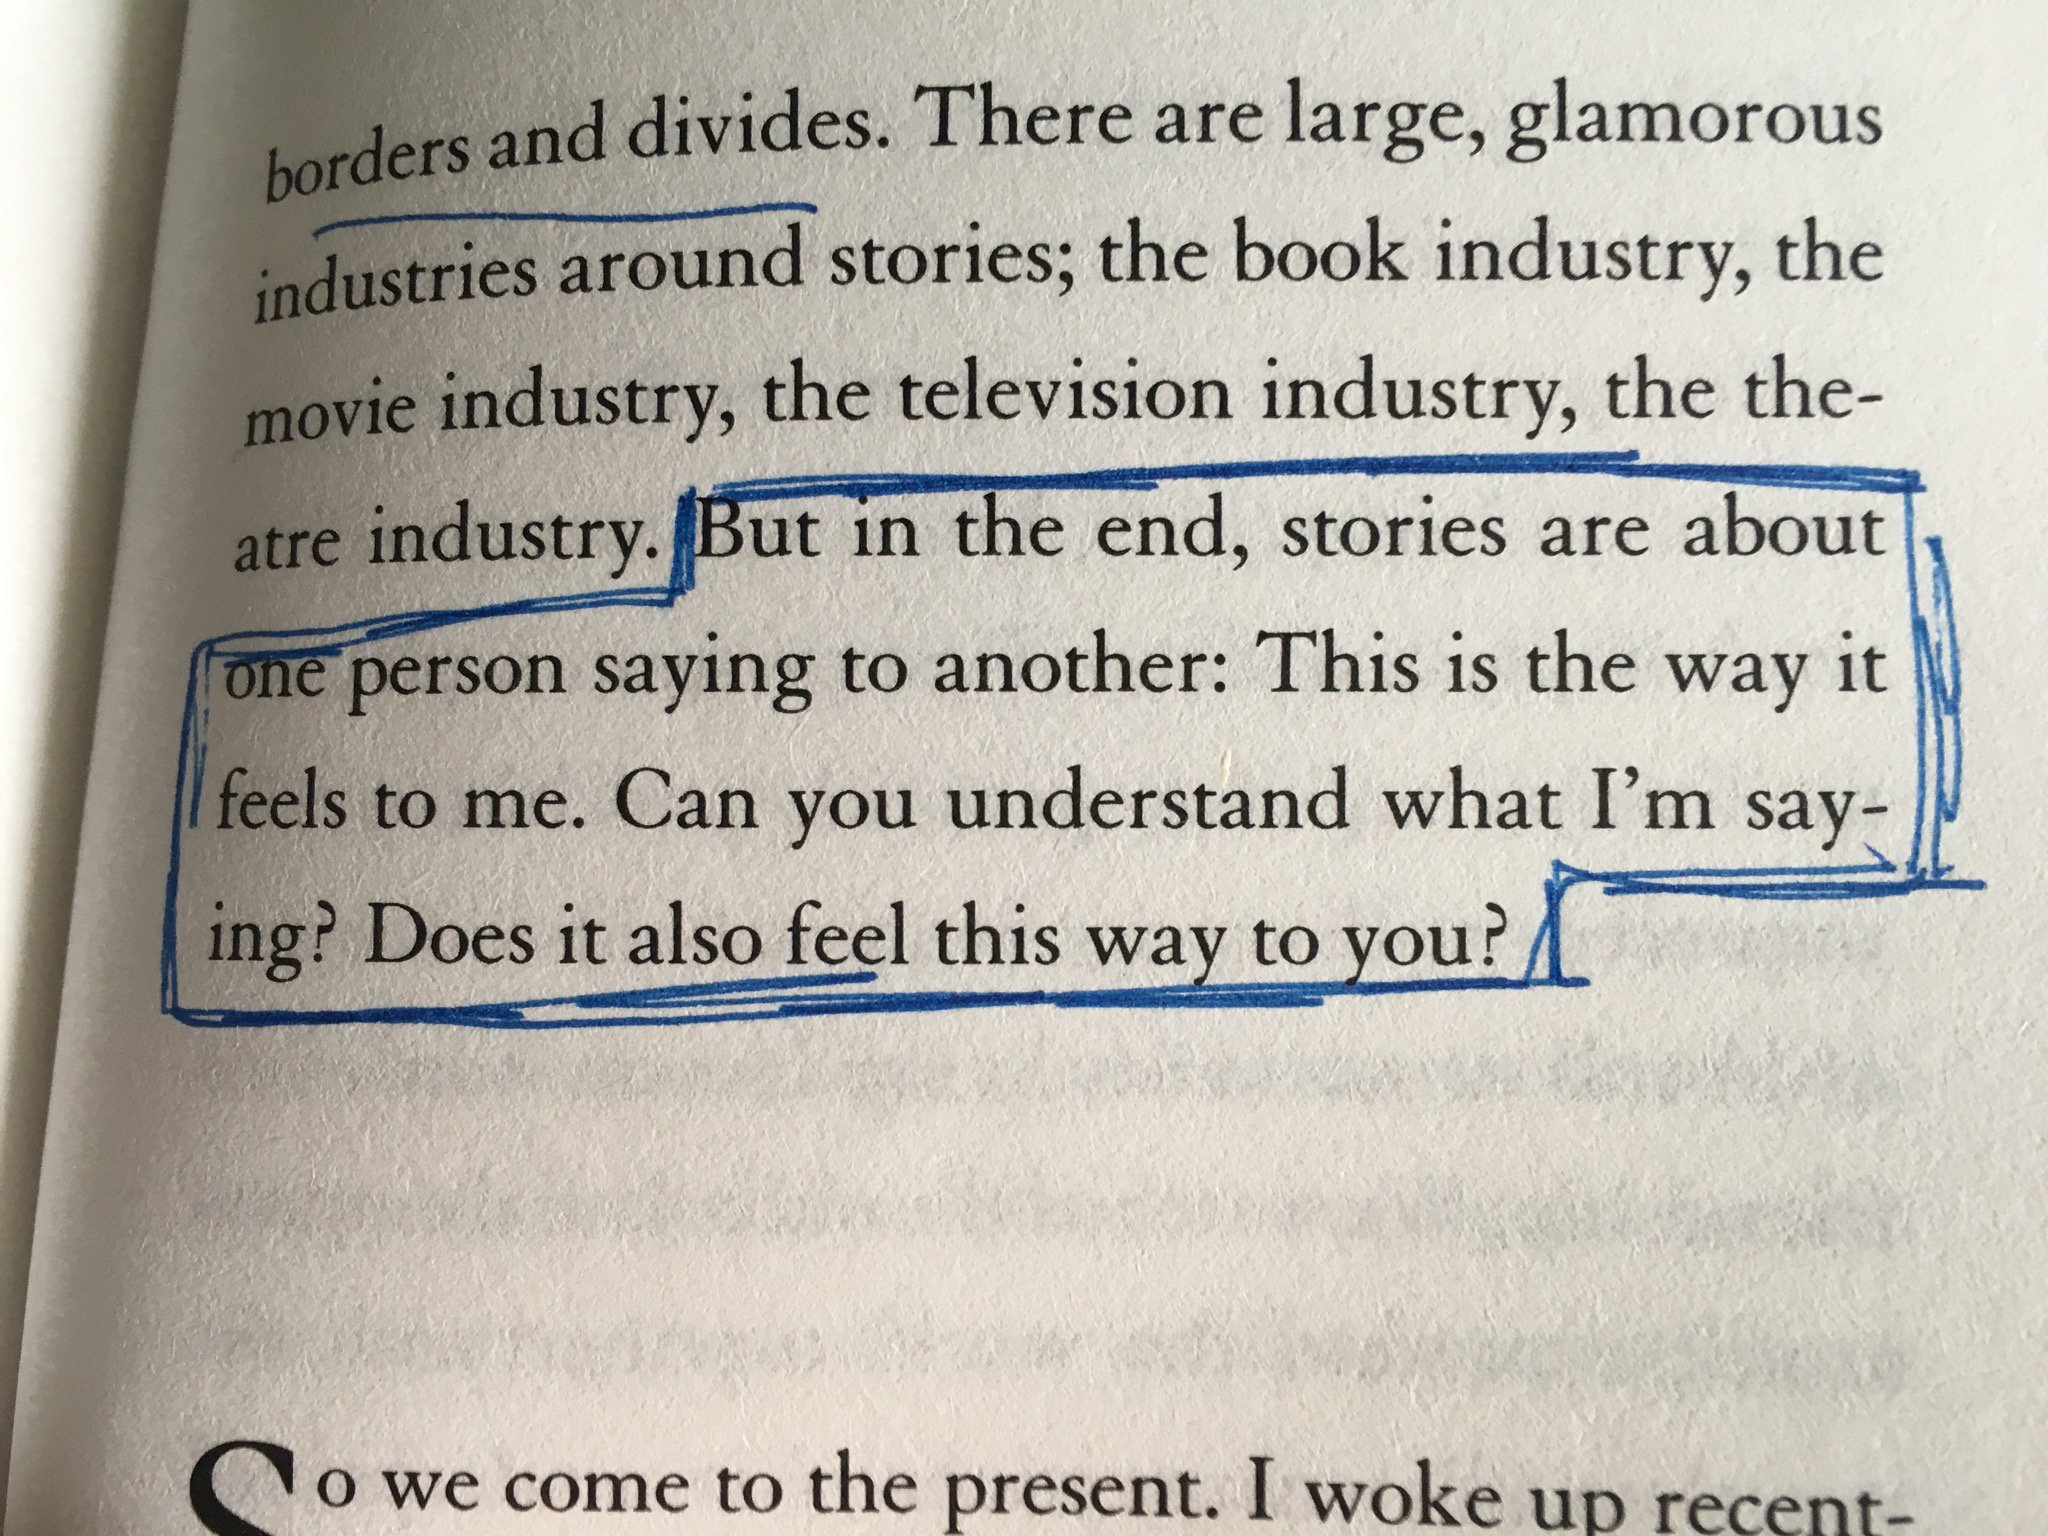 From Kazuo Ishiguro's Nobel acceptance speech. Stories are about one person saying to another, This is the way it feels to me? Does it feel the same to you? https://t.co/khwbGfVrtS